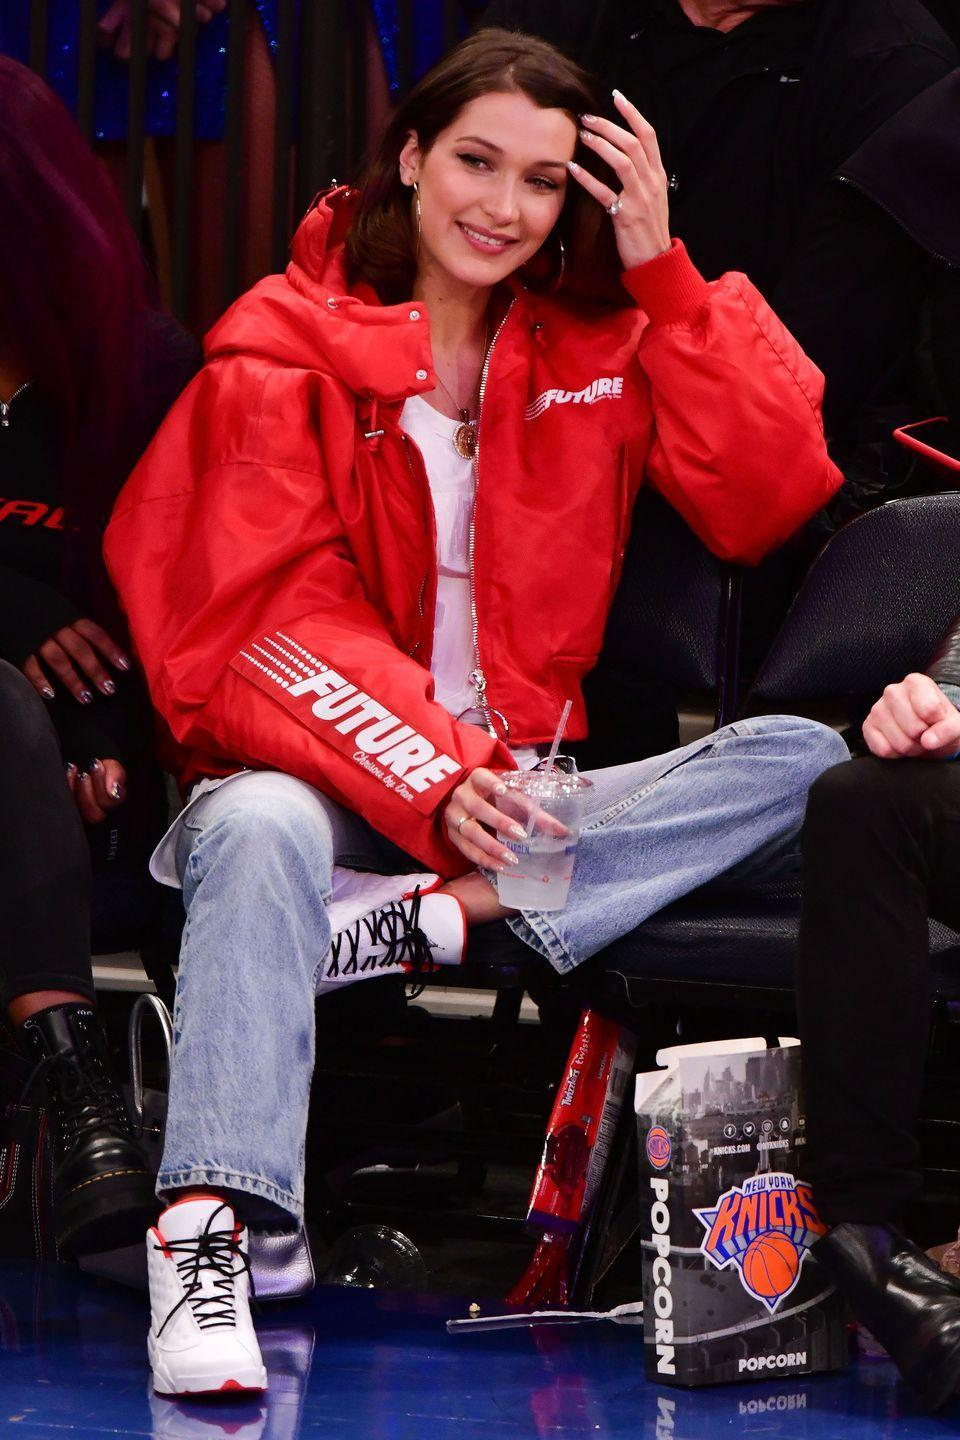 <p>In a Chrisou by Dan bomber jacket, white top, jeans, Jordans, gold hoop earrings, and a gold necklace at a Knicks game in New York City.</p>